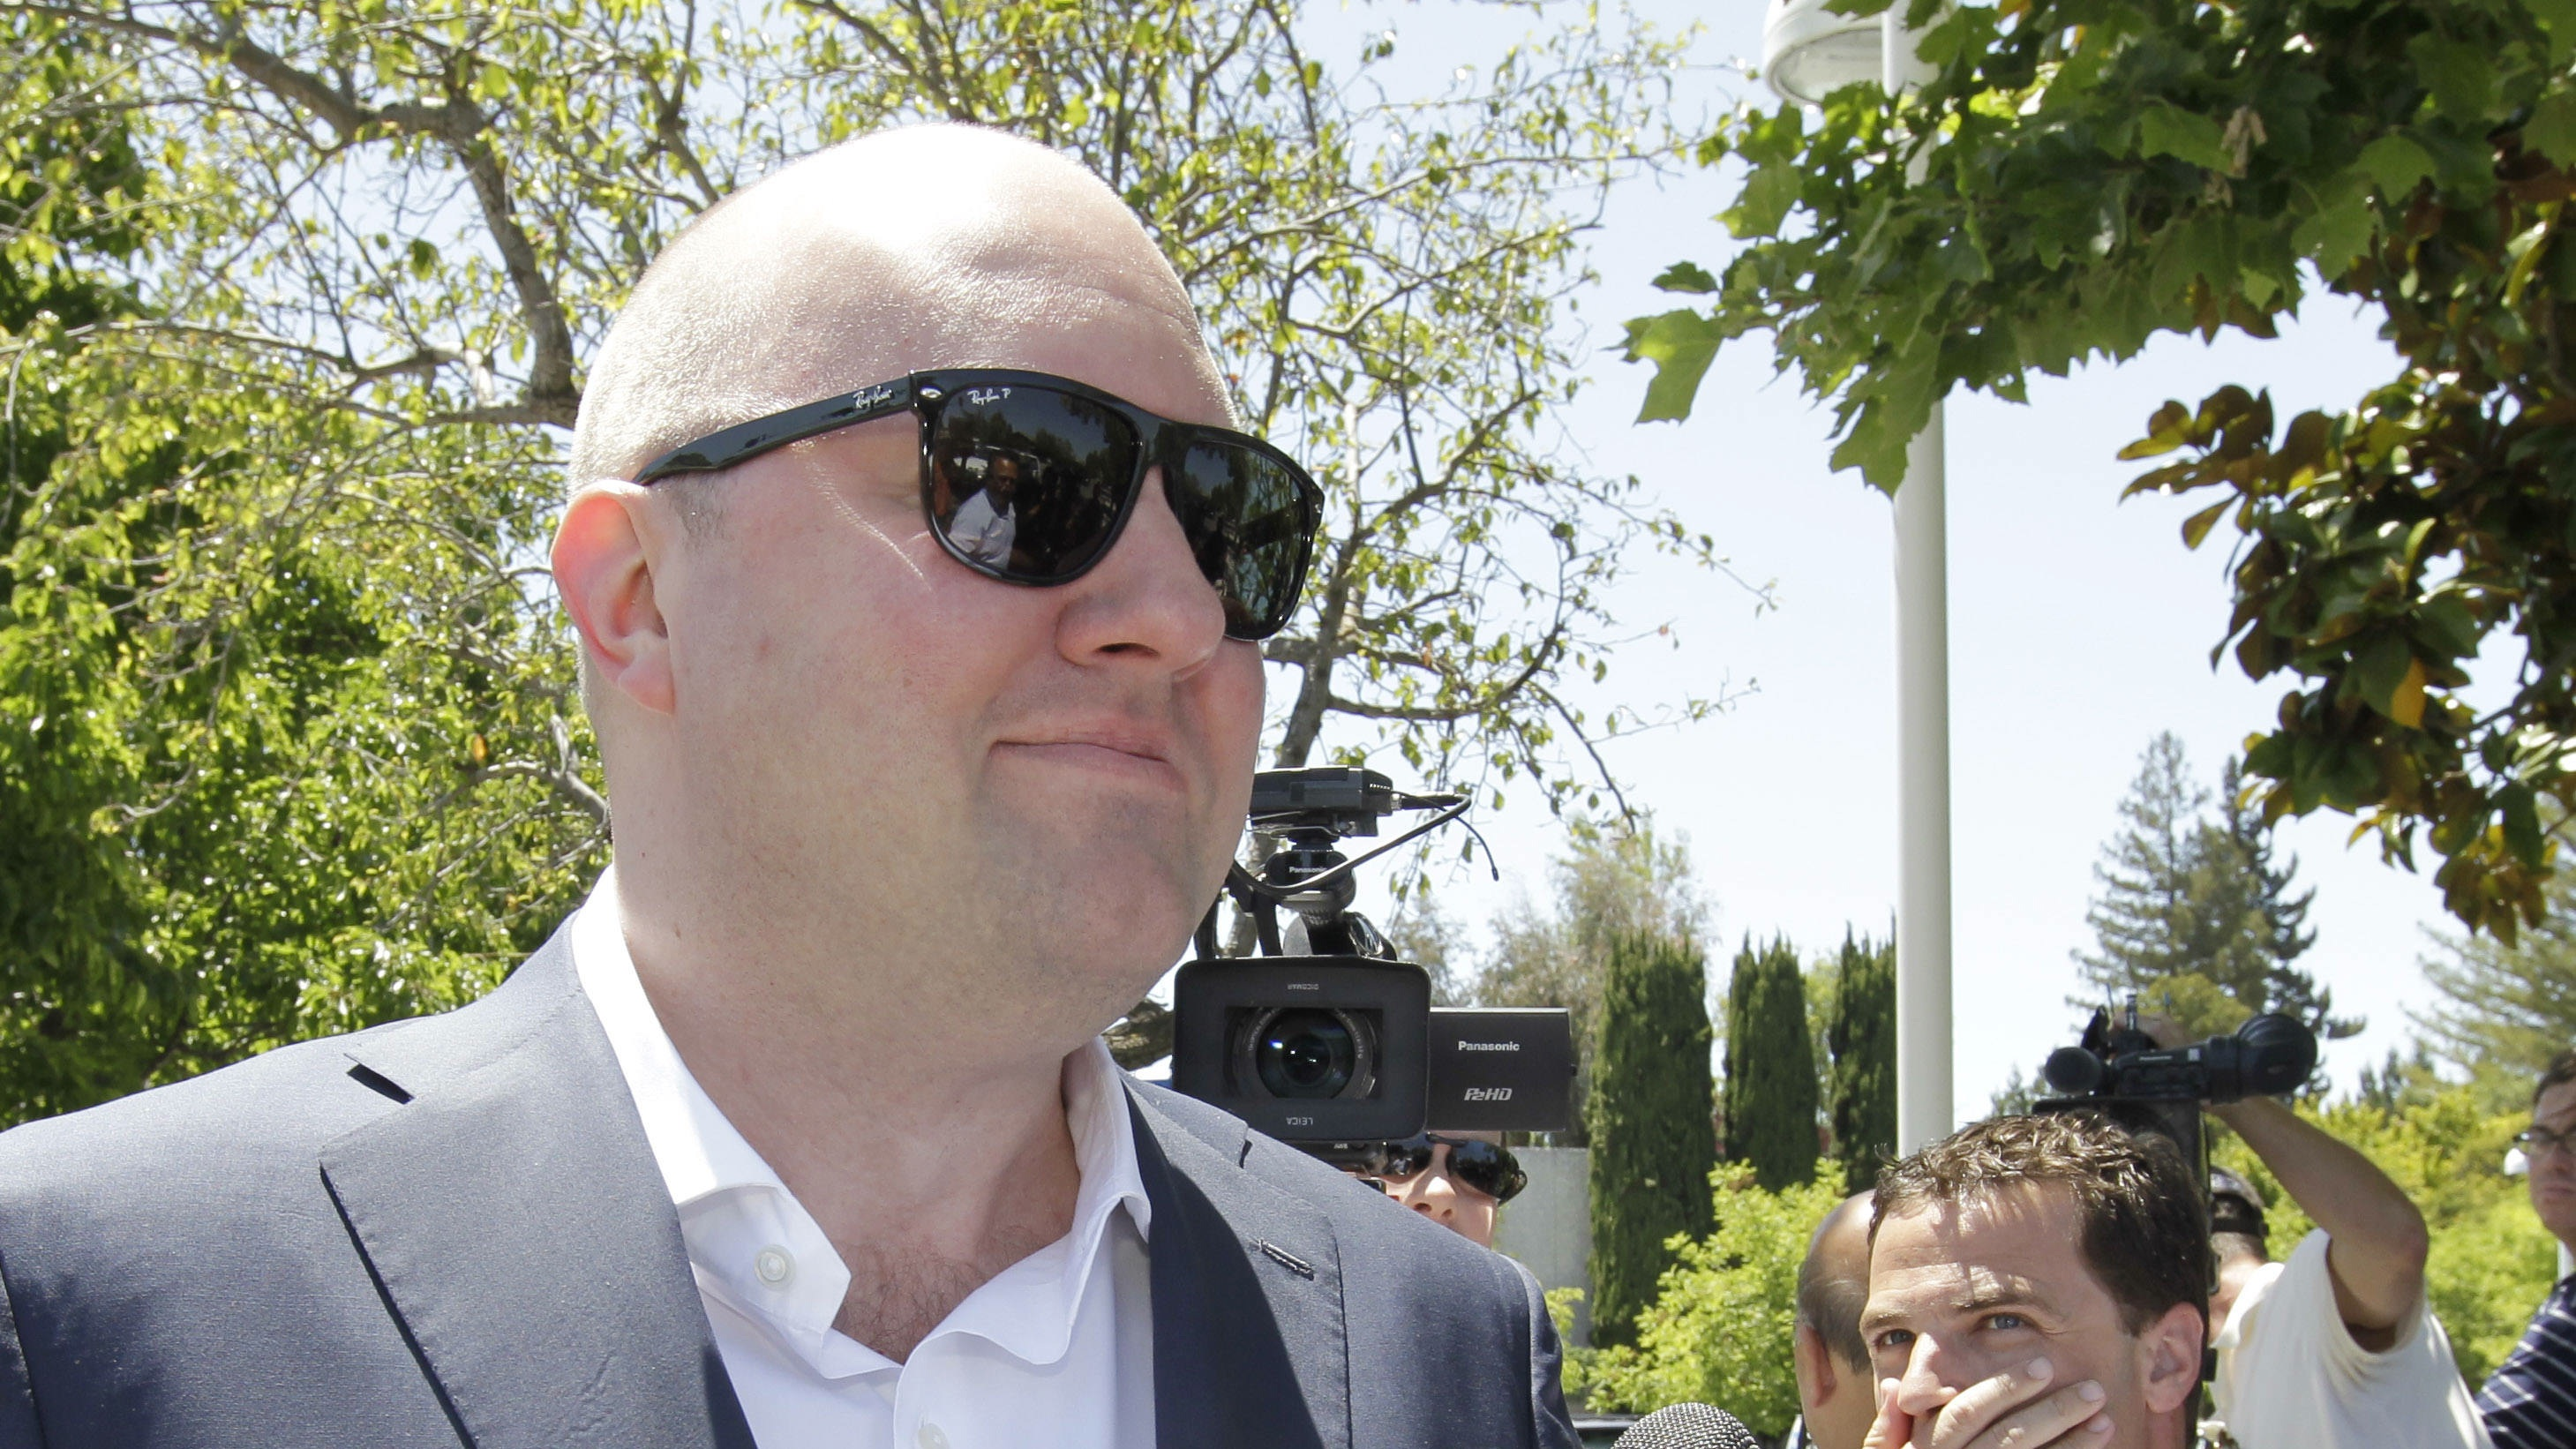 Facebook board member Marc Andreessen, who also co-founded Netscape, leaves a hotel in Palo Alto, Calif., Friday, May 11, 2012 from an investors meeting about Facebook's IPO. CEO Mark Zuckerberg and other executives spoke to prospective investors at the hotel luncheon on Friday. The event was the last of the bigger roadshows Facebook Inc. is holding ahead of its initial public offering expected late next week. (AP Photo/Paul Sakuma)